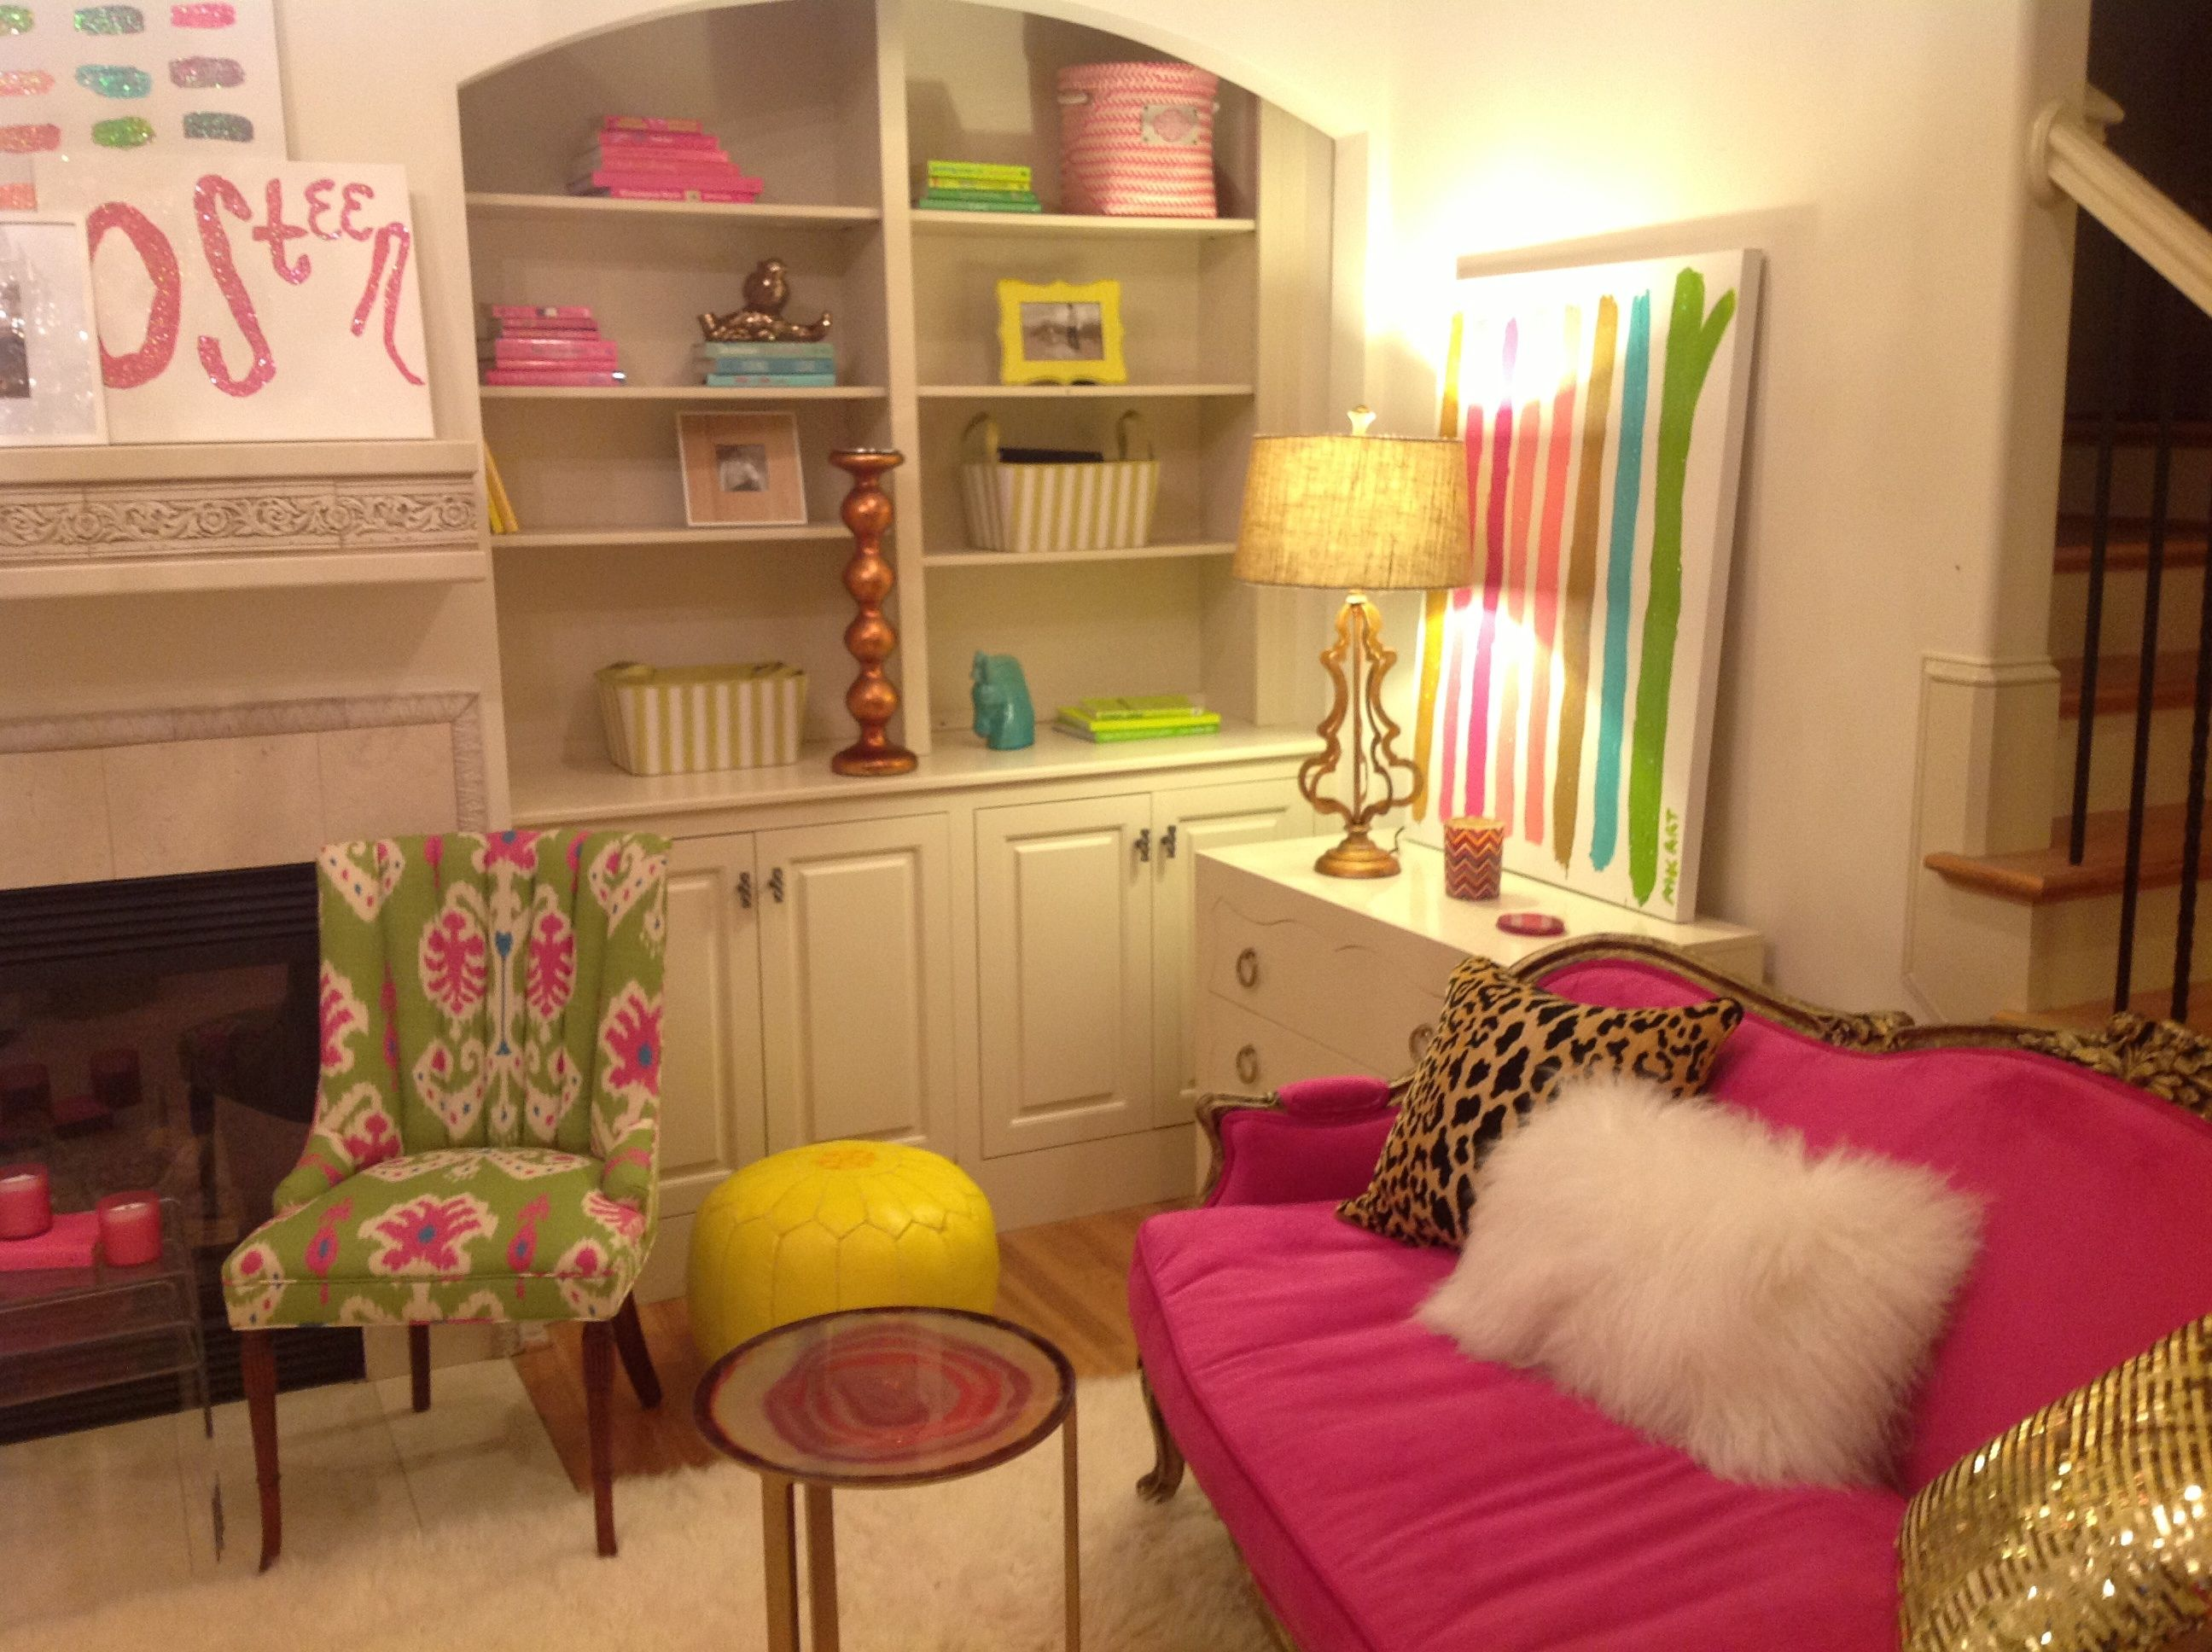 Attic ideas pink sofa and pillows leopard